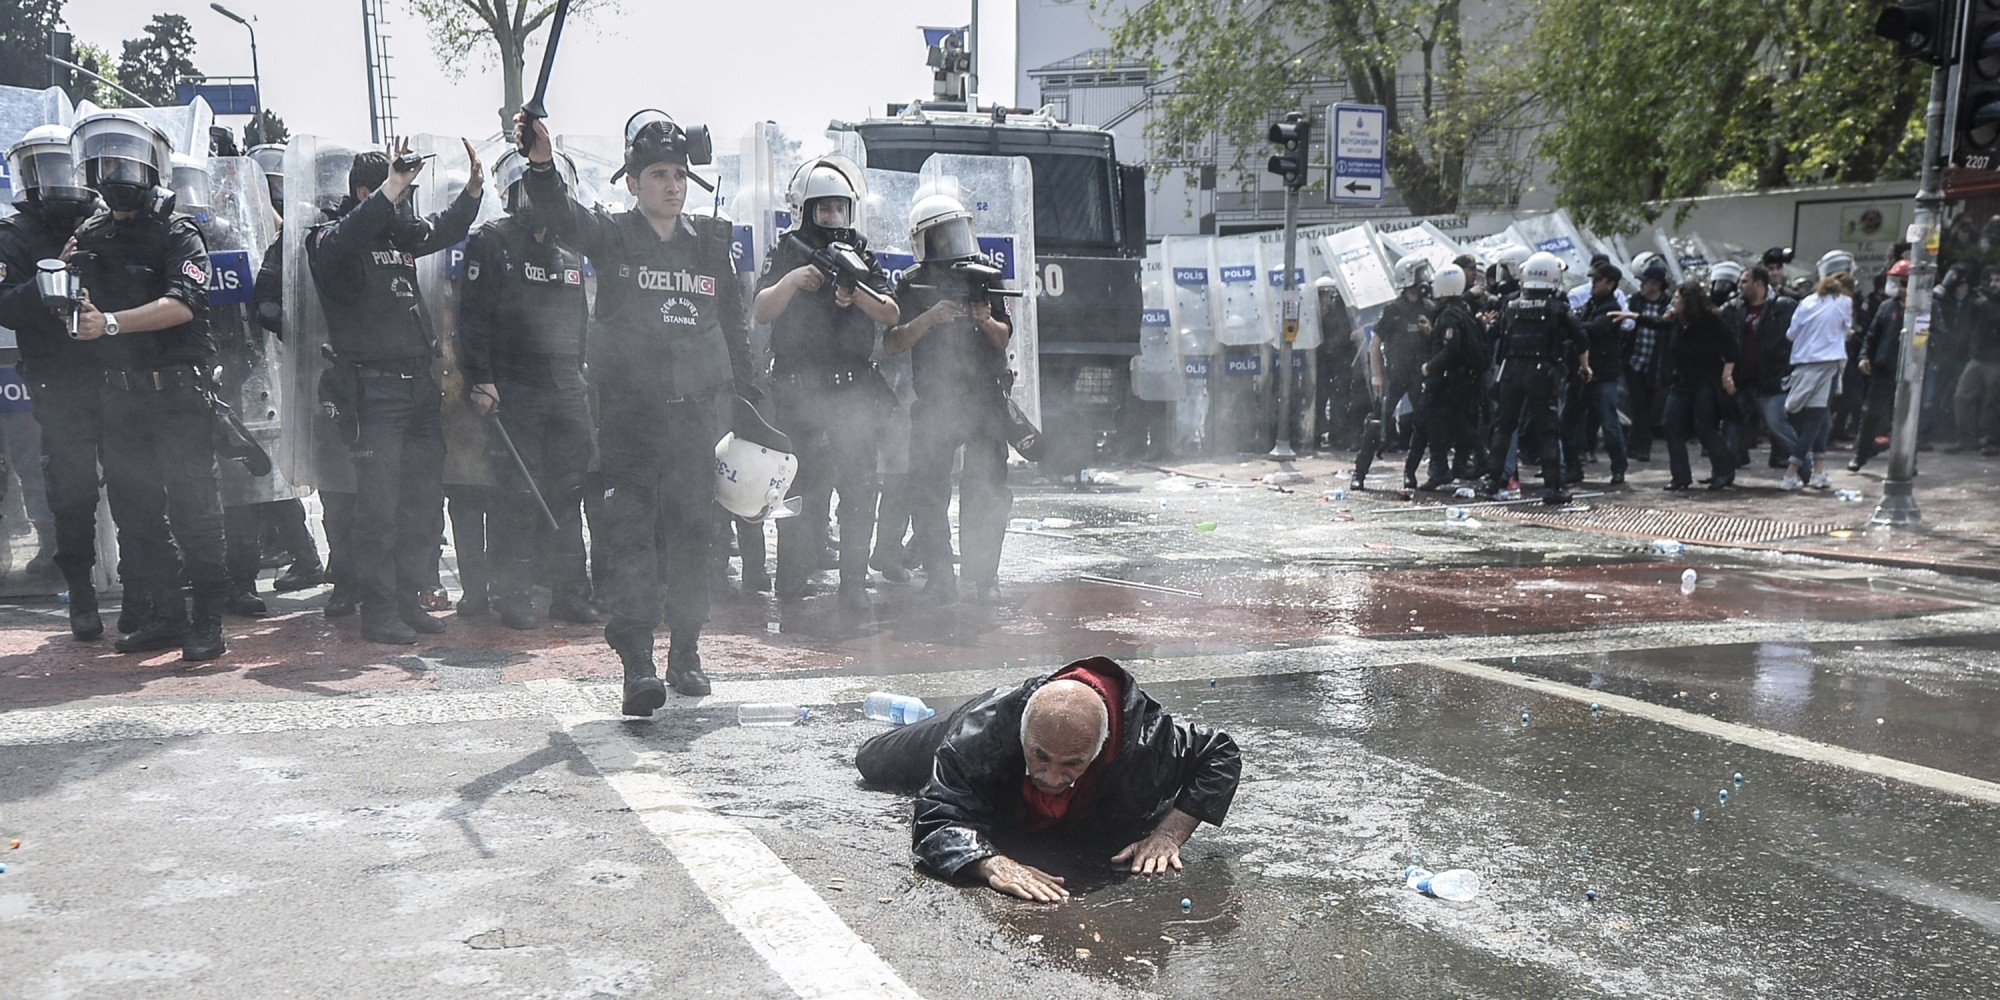 Turkeys Police Clash With Hundreds Defying Protest Ban On